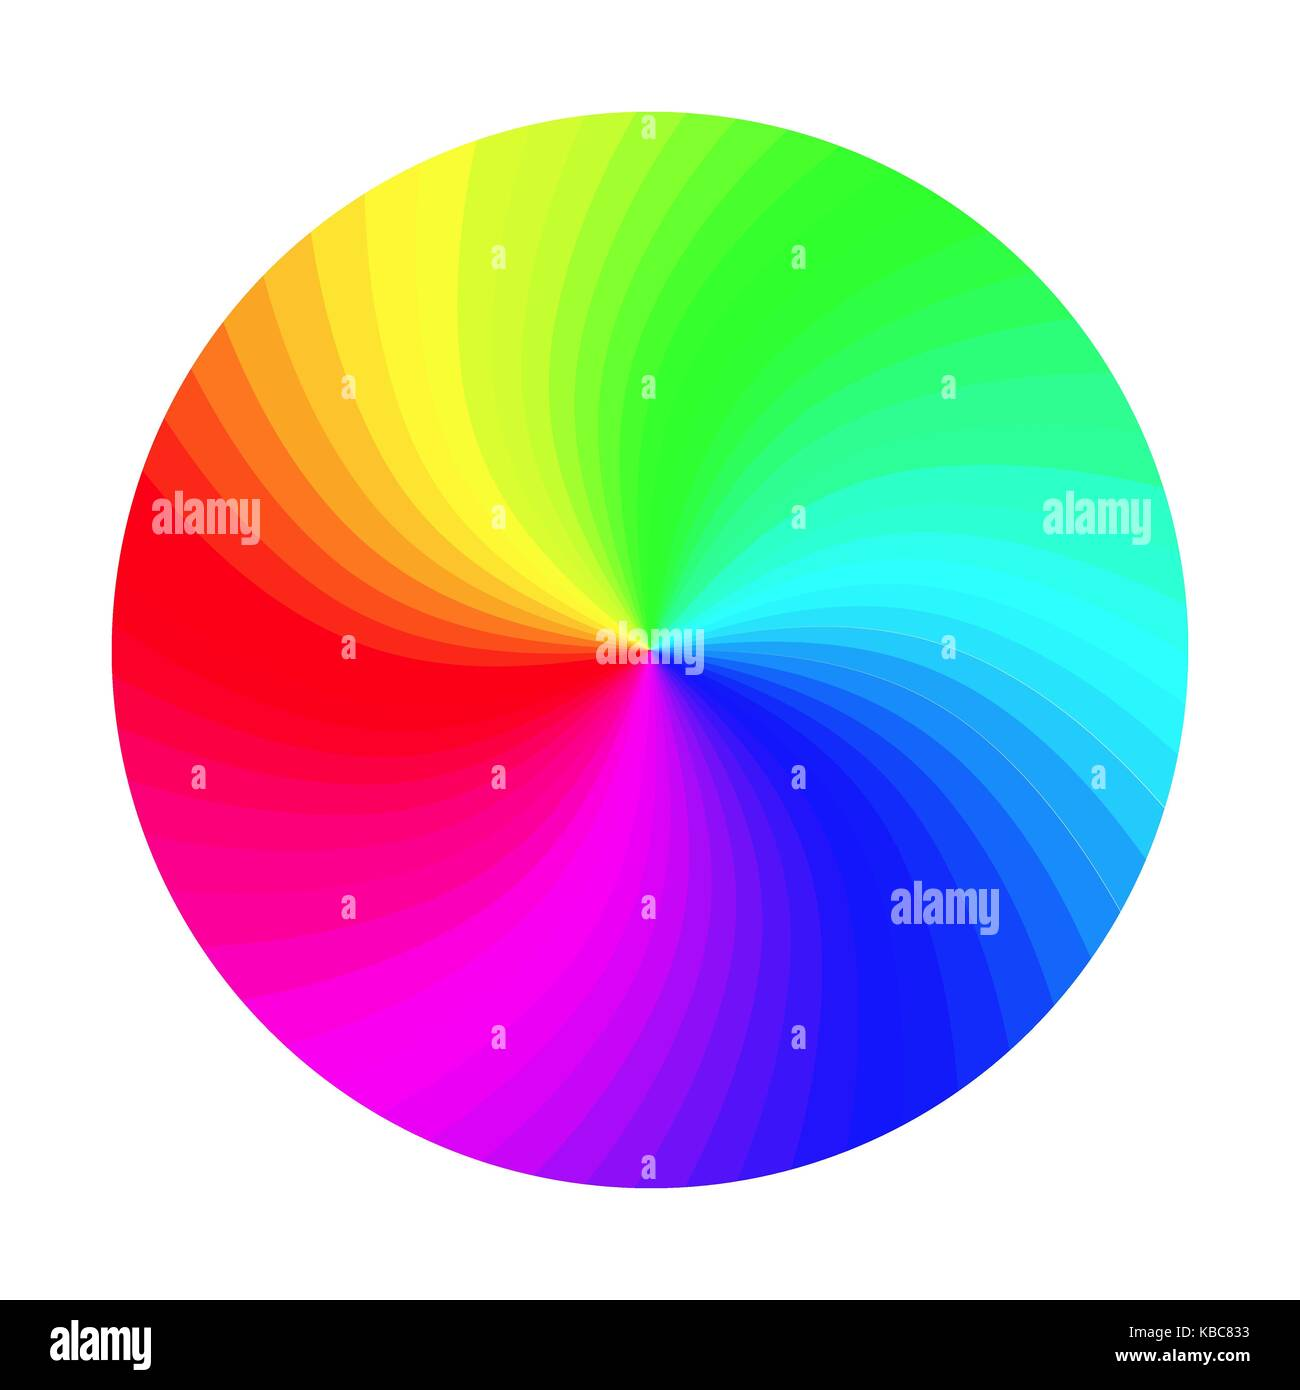 Rgb color wheel vector round classic palette isolated illustration rgb color wheel vector round classic palette isolated illustration nvjuhfo Image collections